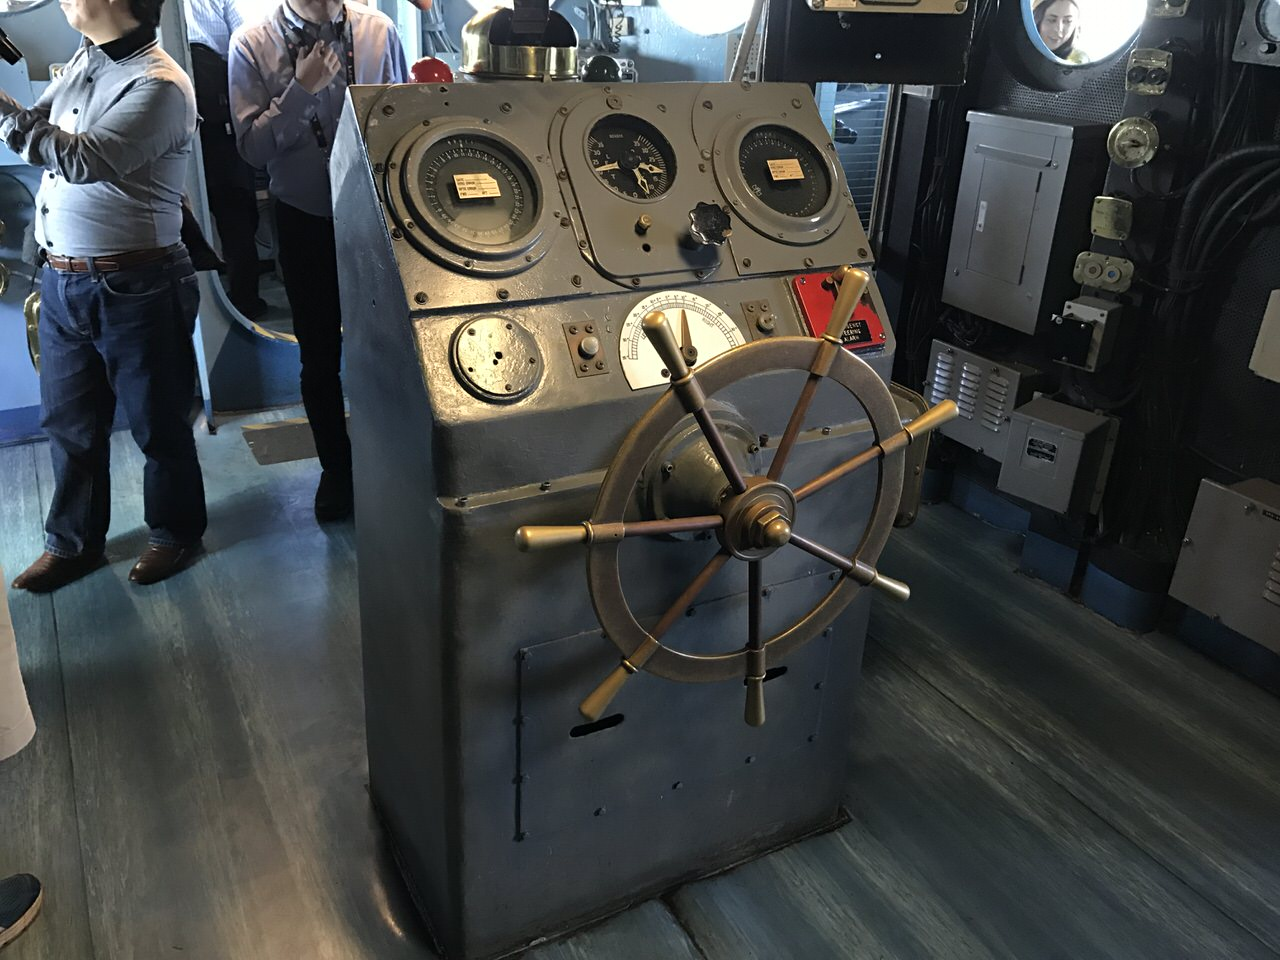 Uss midway museum 0585